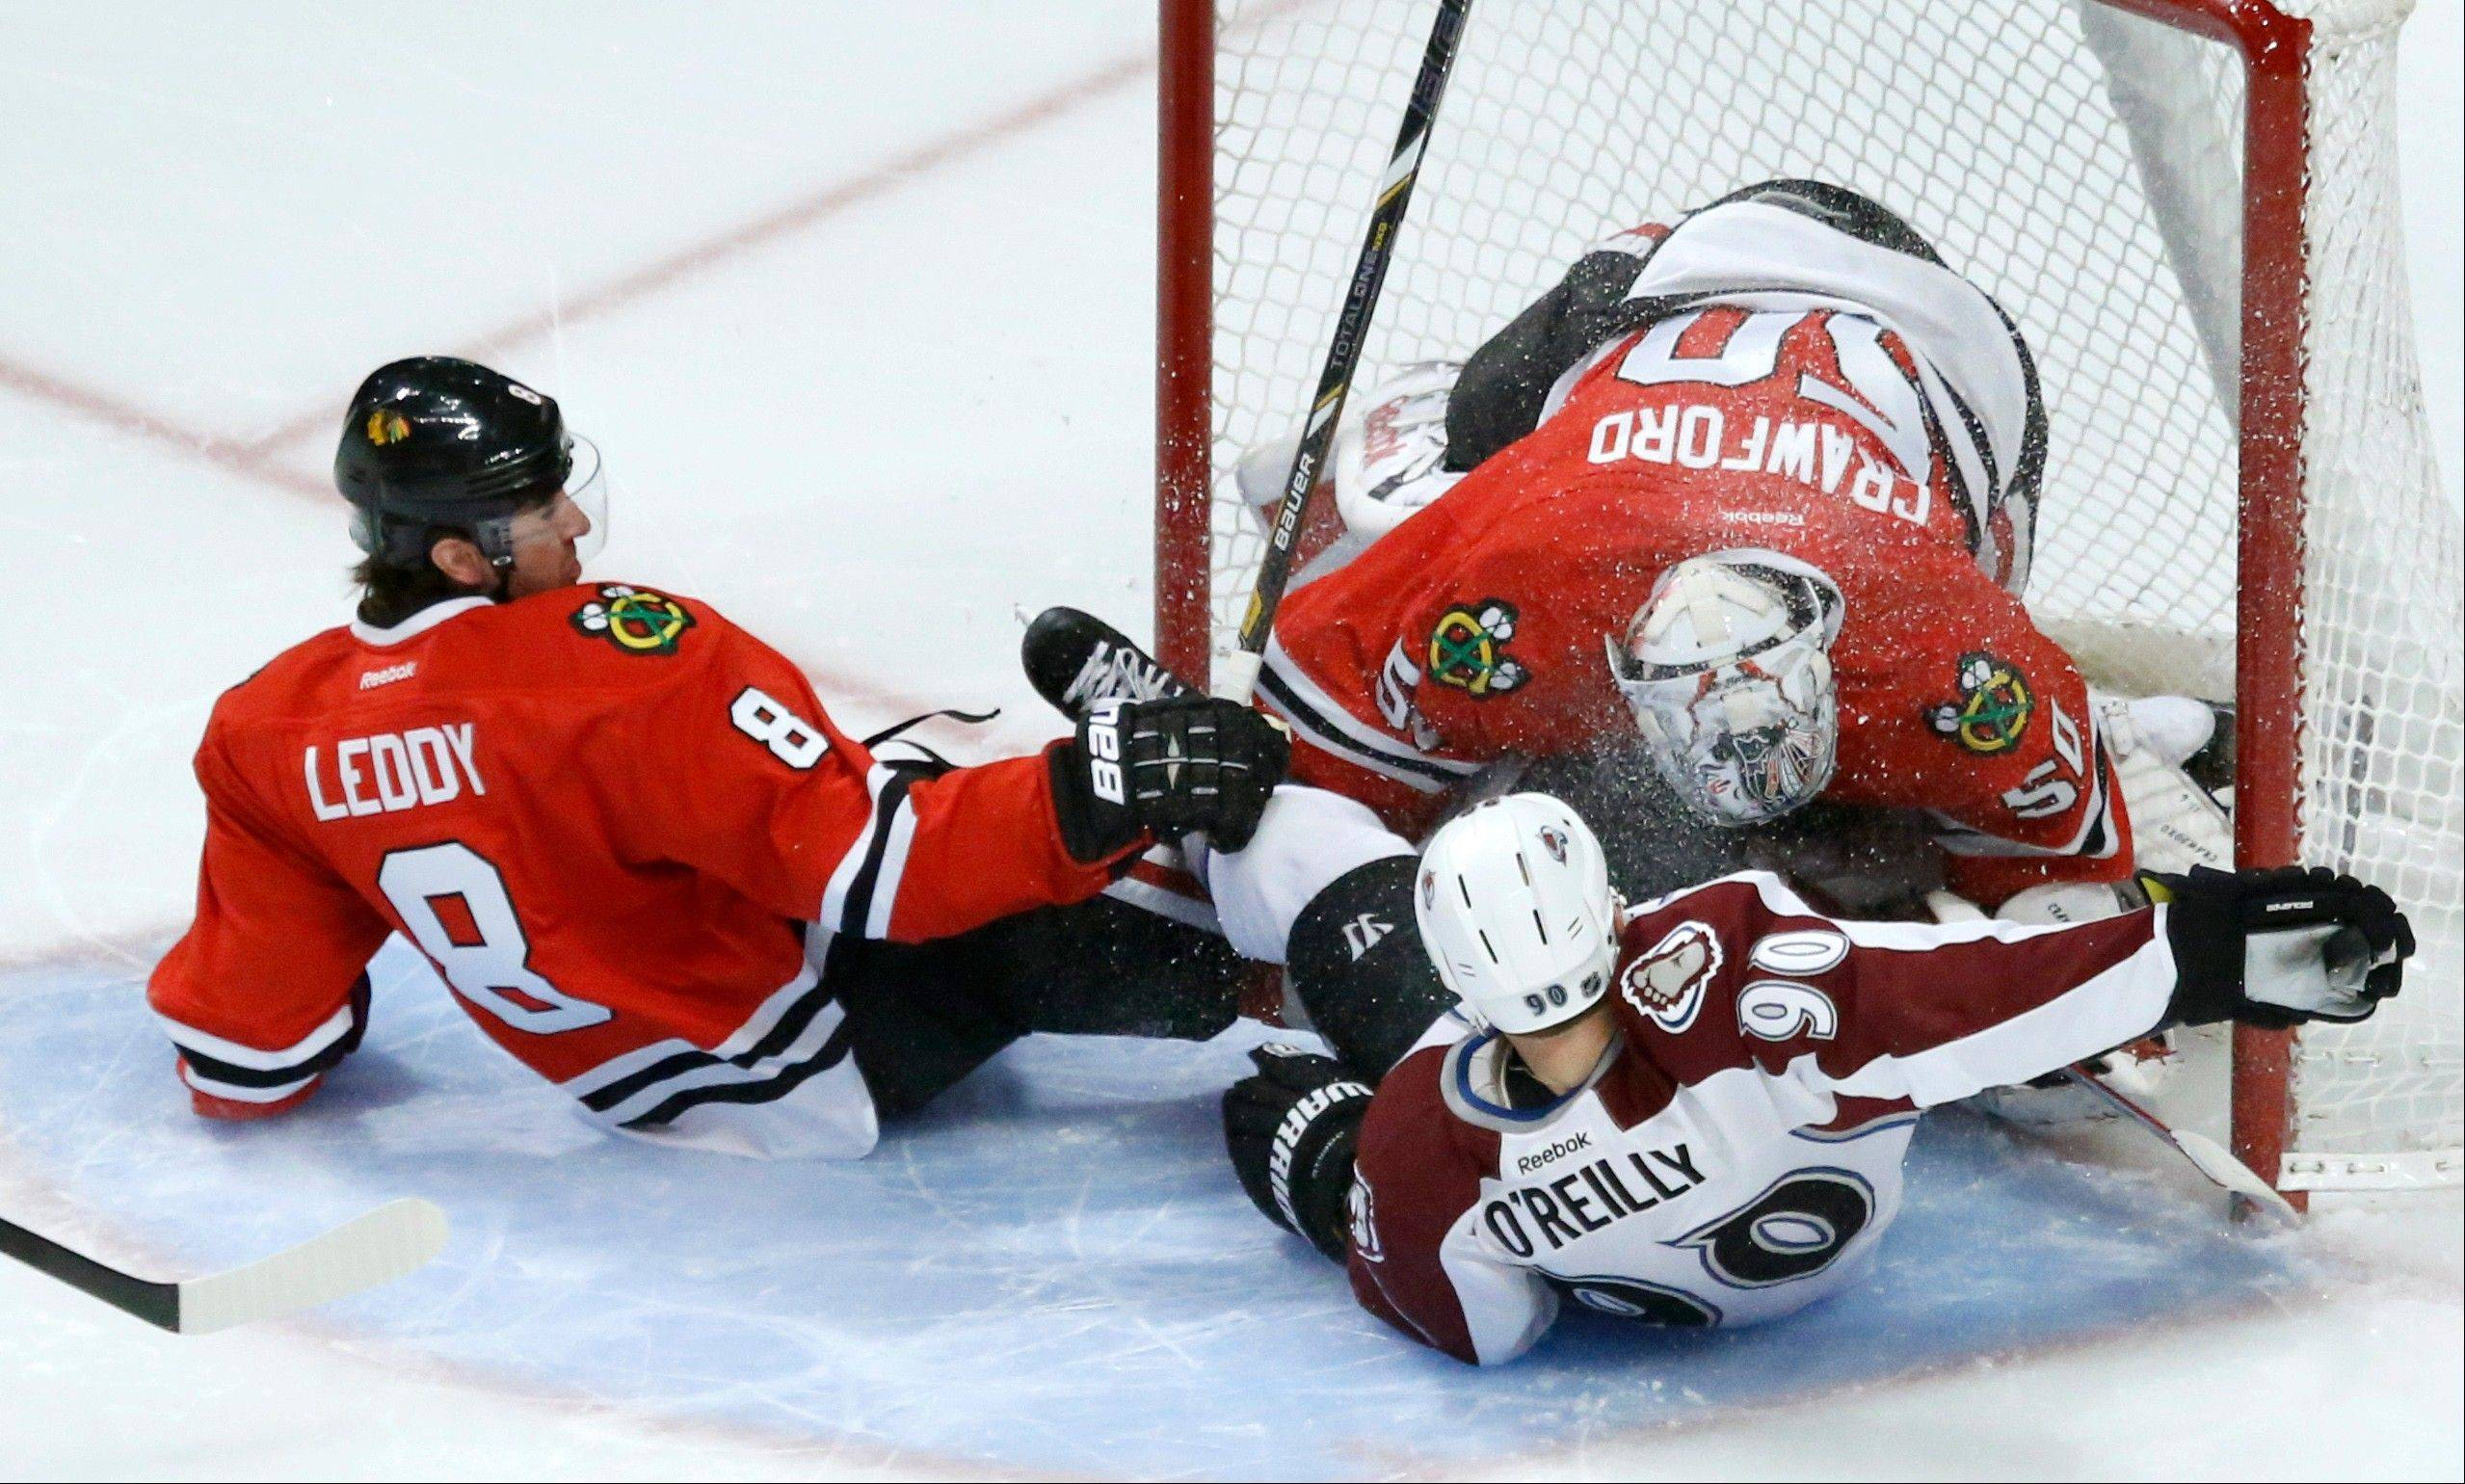 The Blackhawks� Nick Leddy (8) and Ryan O�Reilly of the Avalanche crash into goalie Corey Crawford during the first period Tuesday at the United Center.